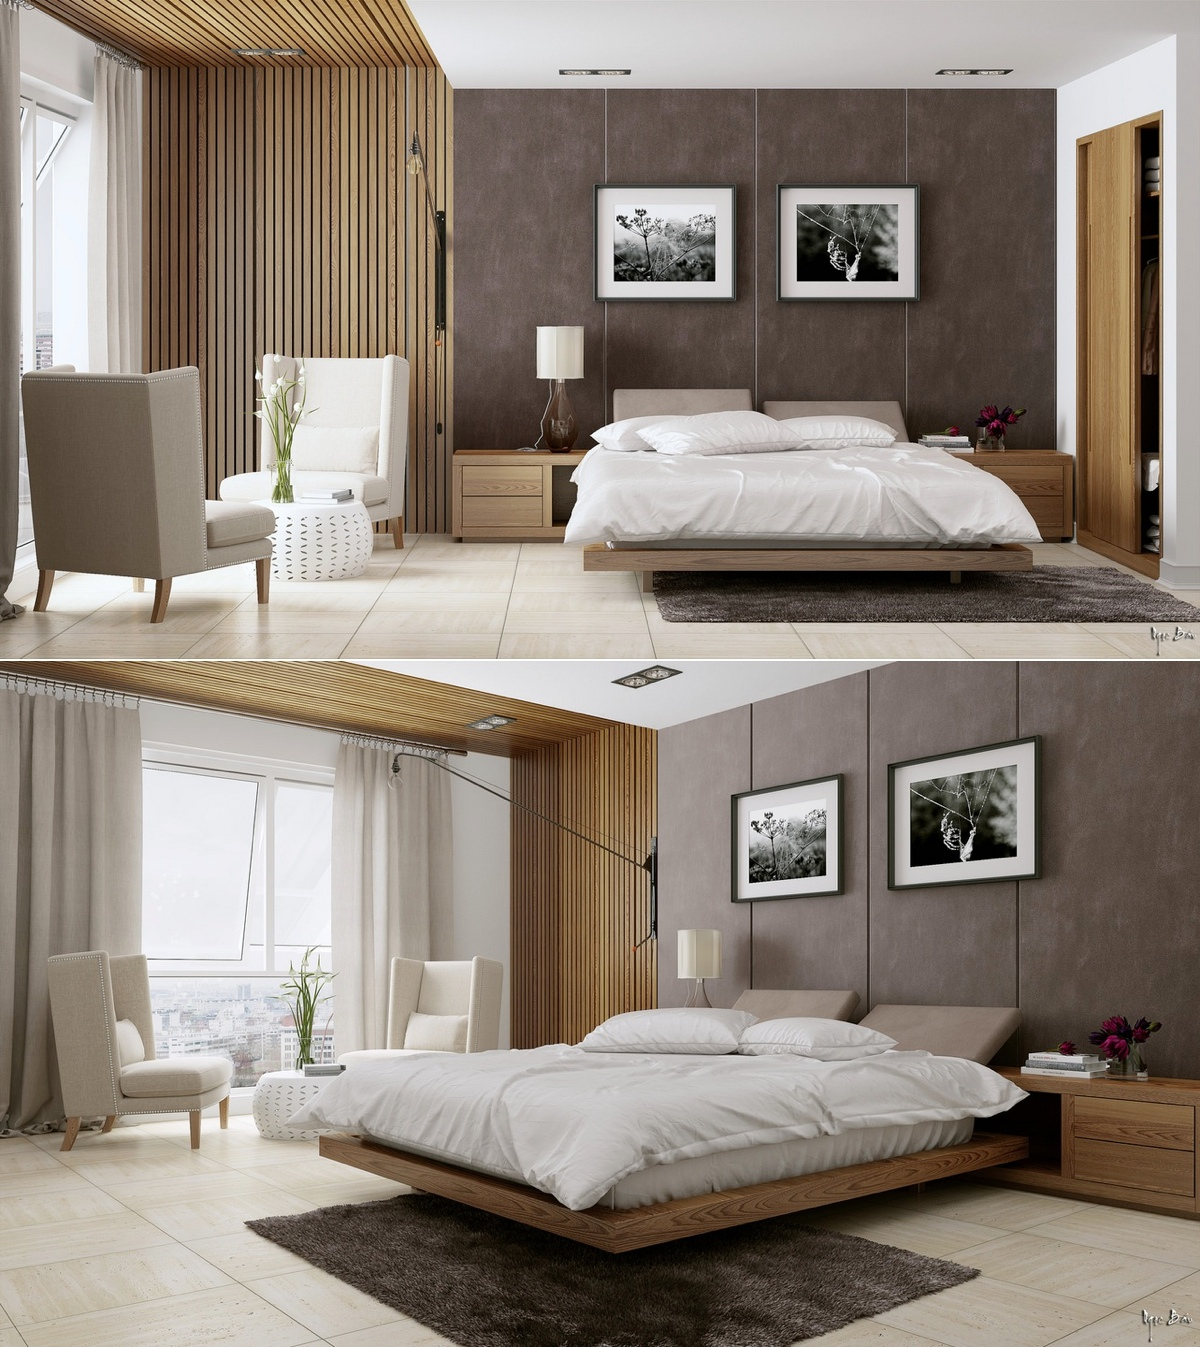 stylish bedroom designs with beautiful creative details - How To Design A Modern Bedroom